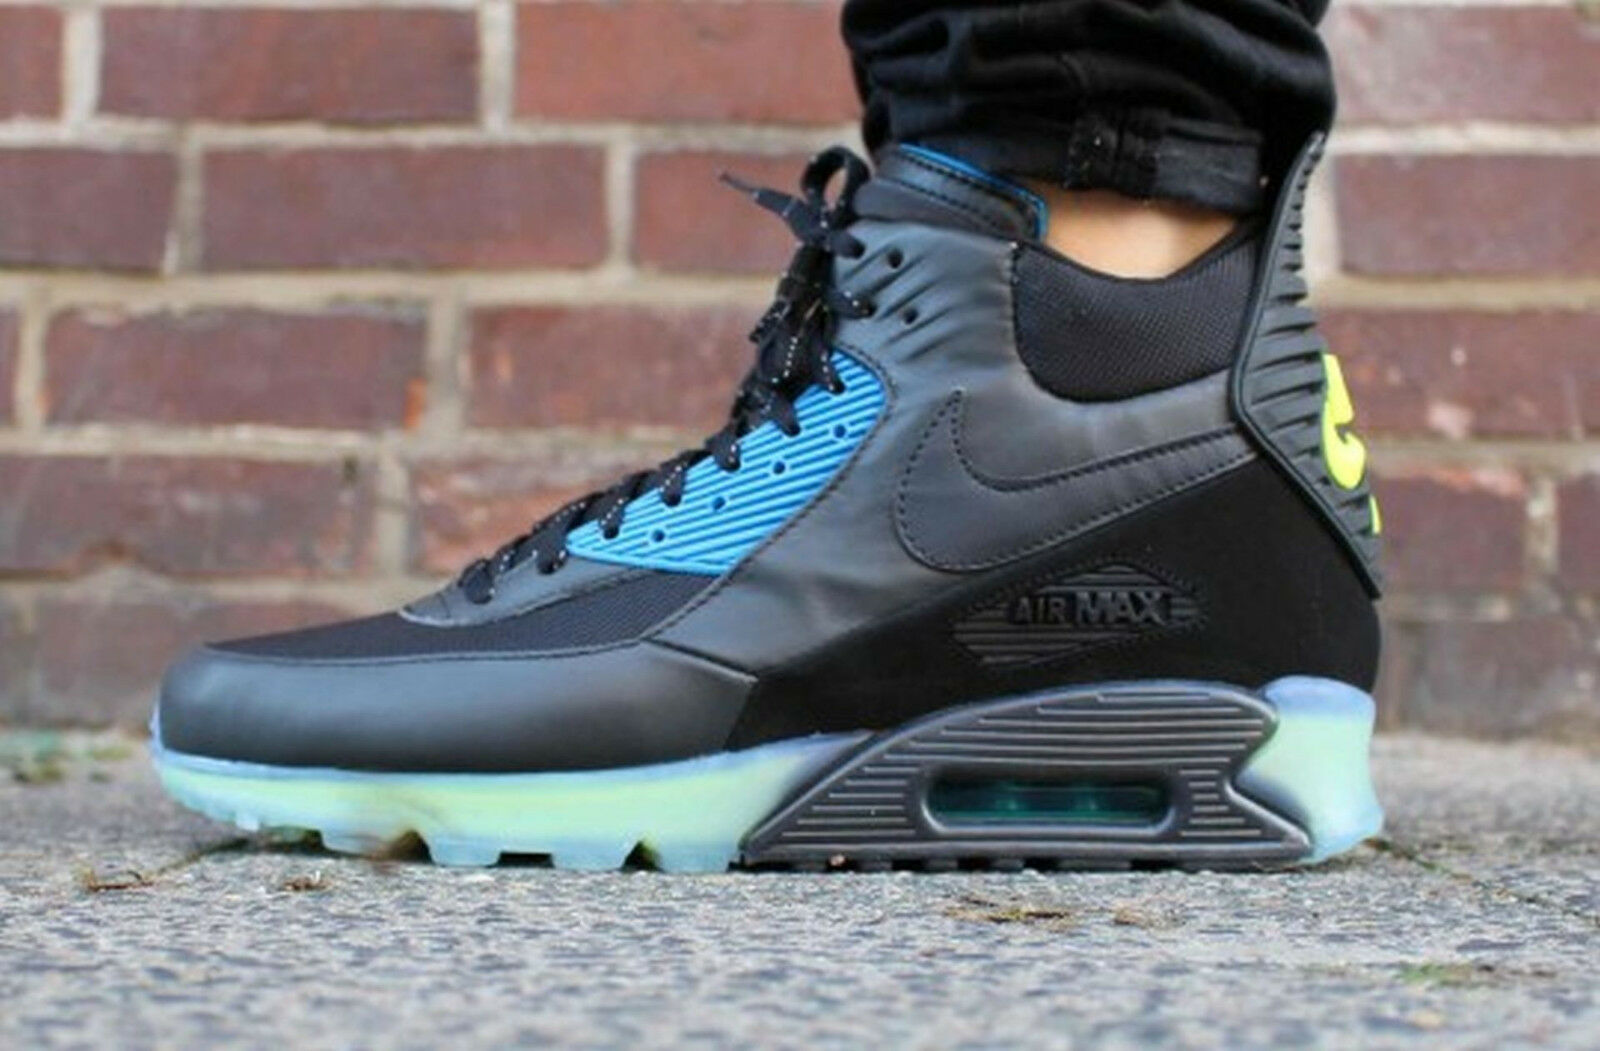 NIKE AIR MAX 90 SNEAKERBOOT ICE 684722-001 SZ 7.5 BLACK ASH PHOTO BLUE NEON VOLT